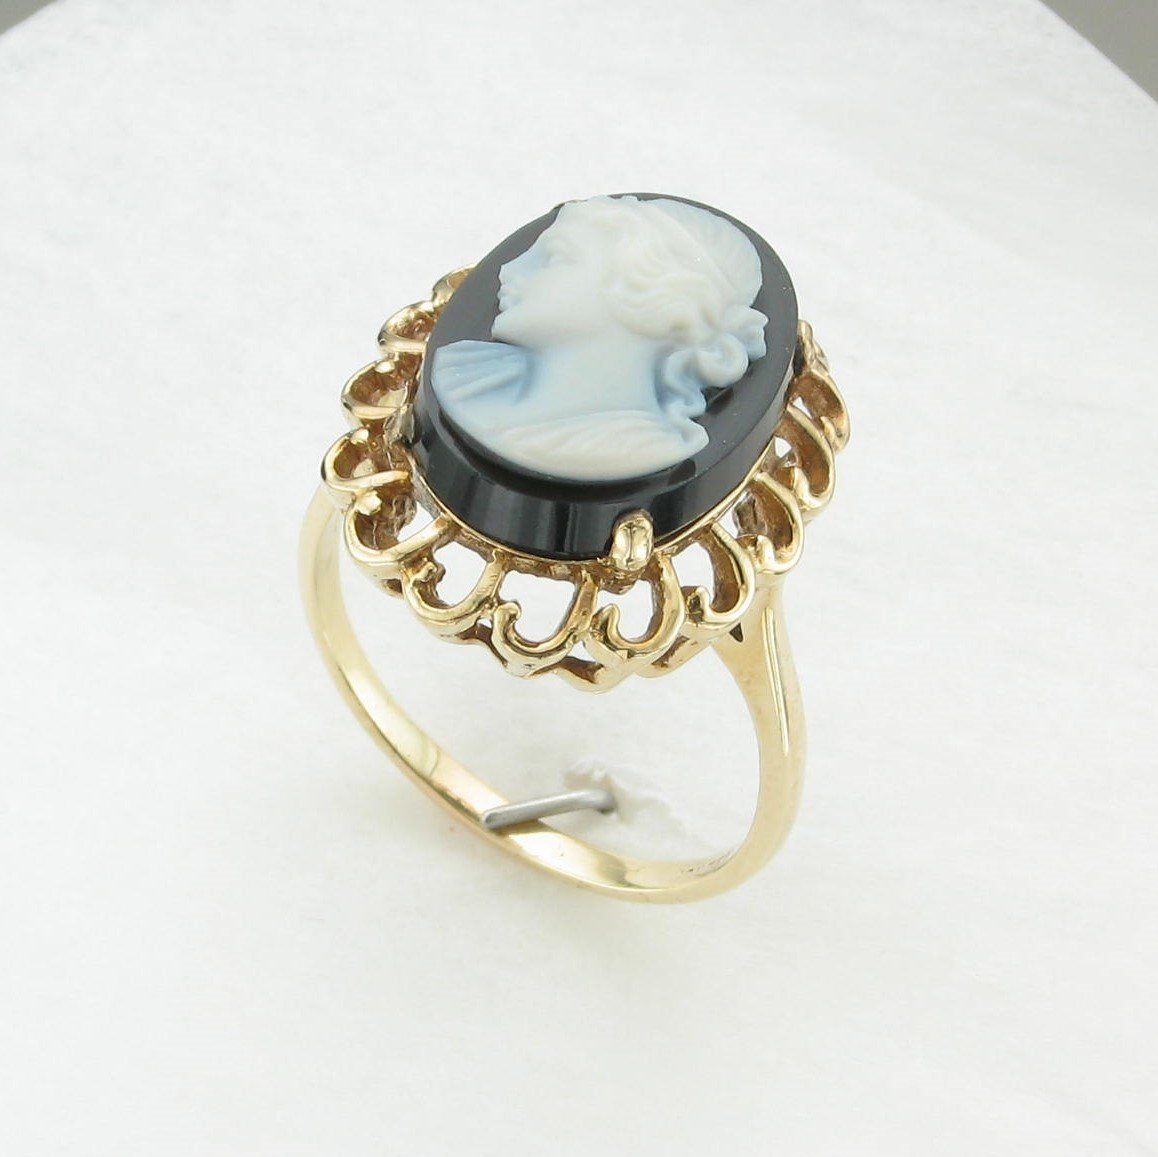 Black Onyx Cameo Ring set in 14K Yellow Gold